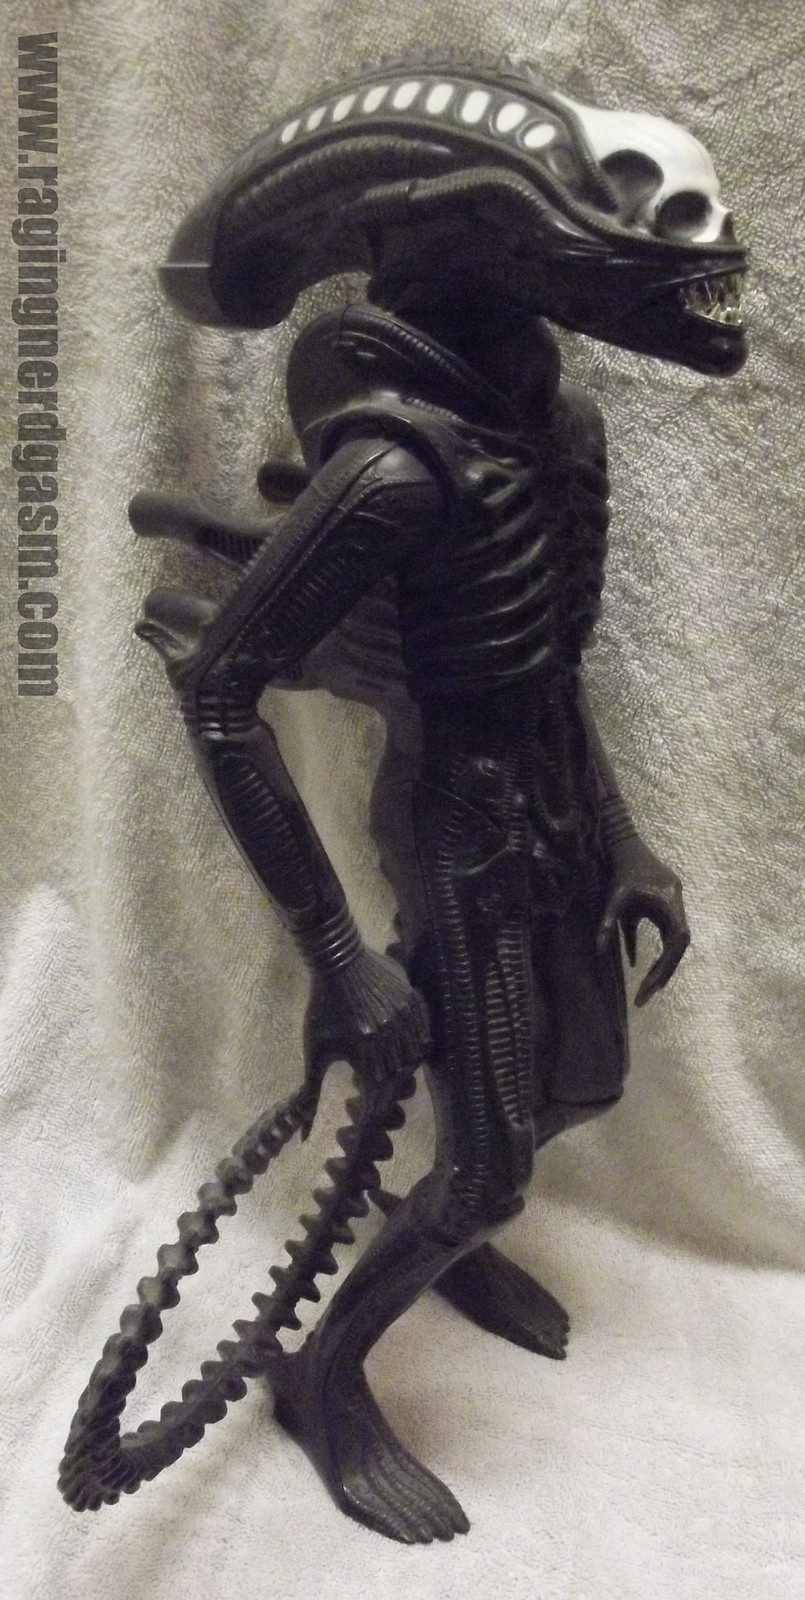 """Big Chap"" from Alien by Kenner"